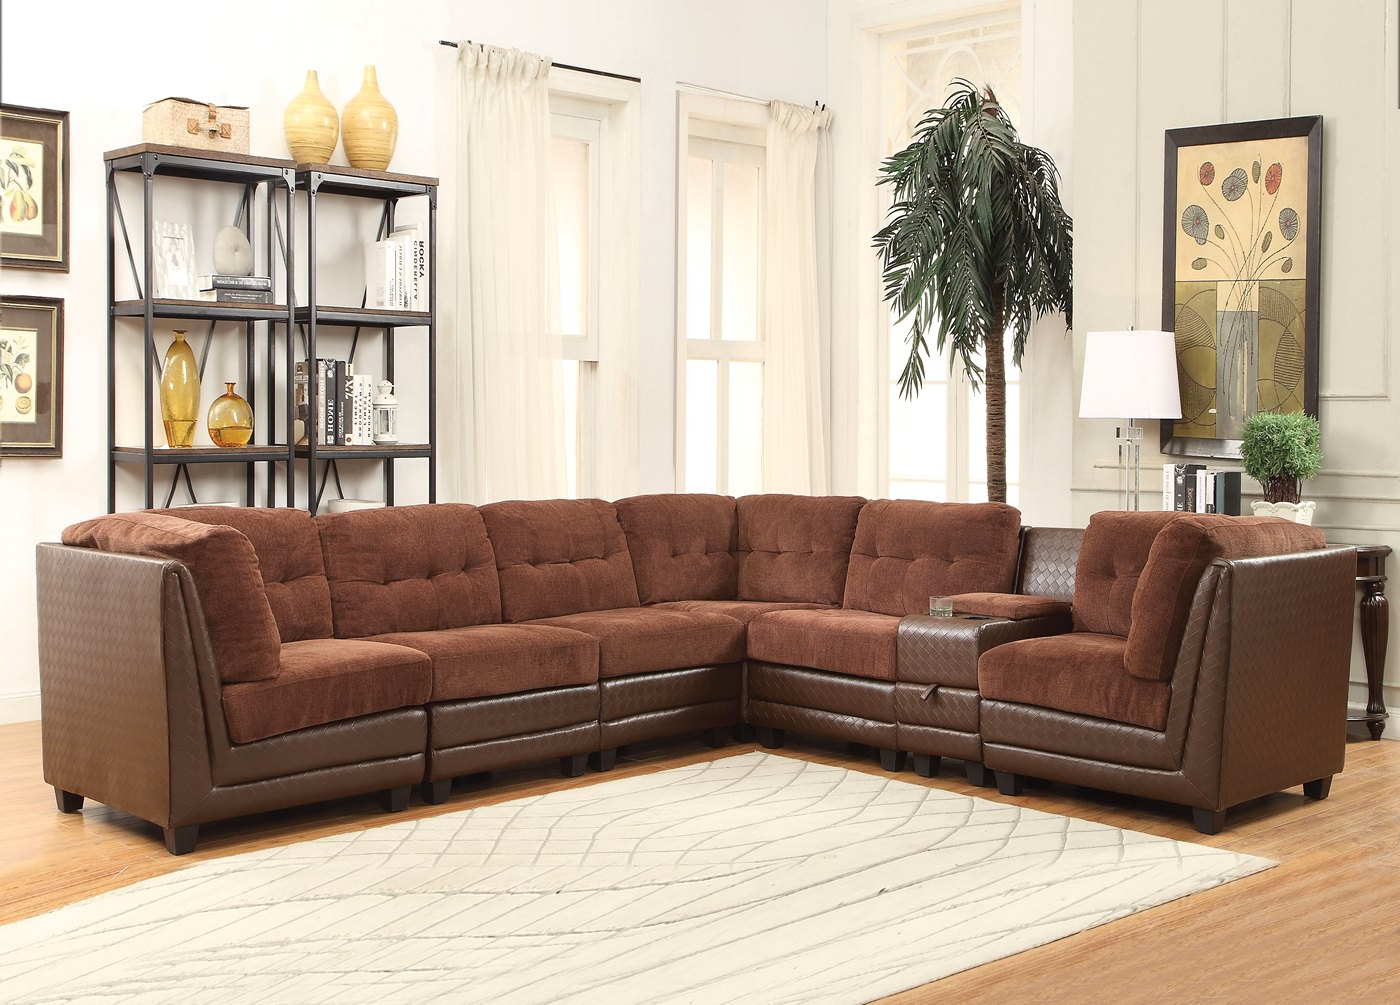 Fashionable Valen 7 Pc Casual Modular Sectional Sofa In Brown Chenille Throughout Paul Modular Sectional Sofas Blue (View 15 of 25)